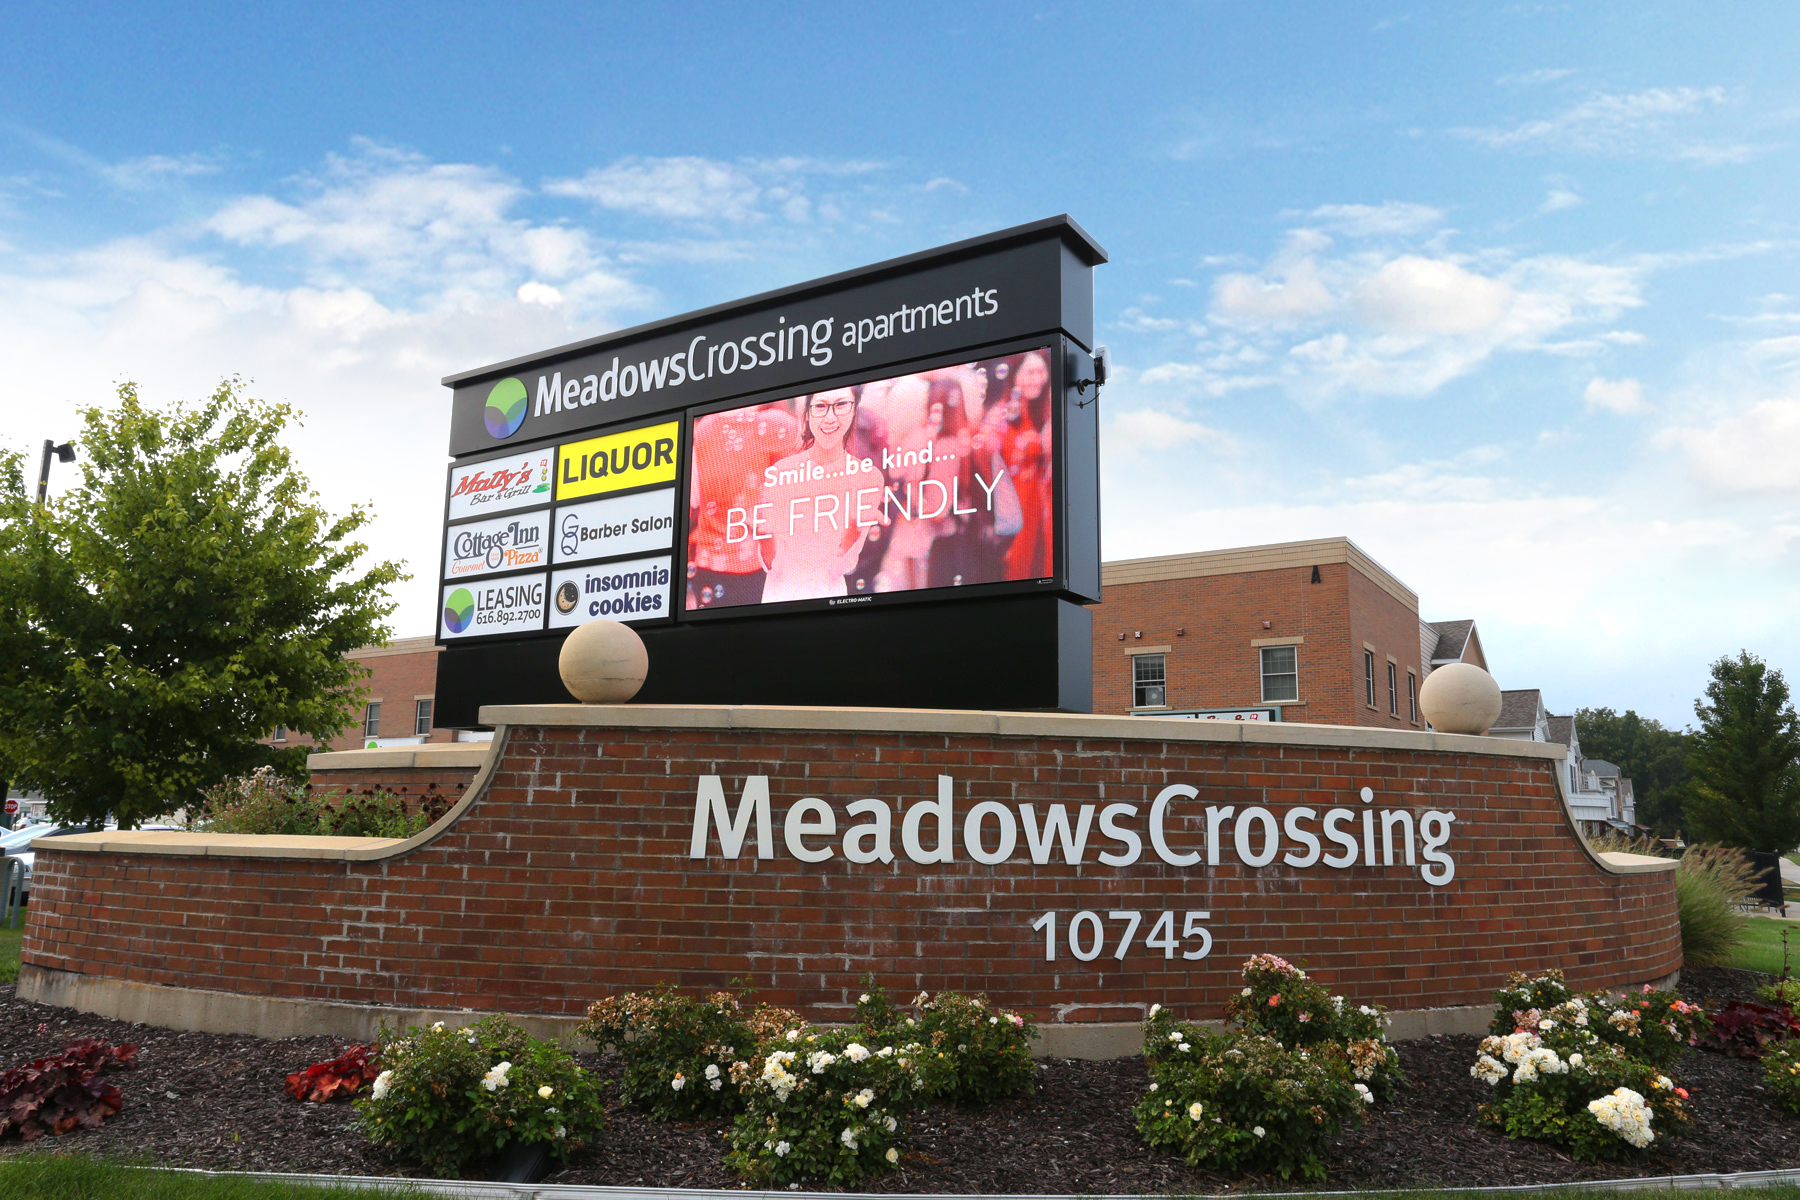 Meadows Crossing